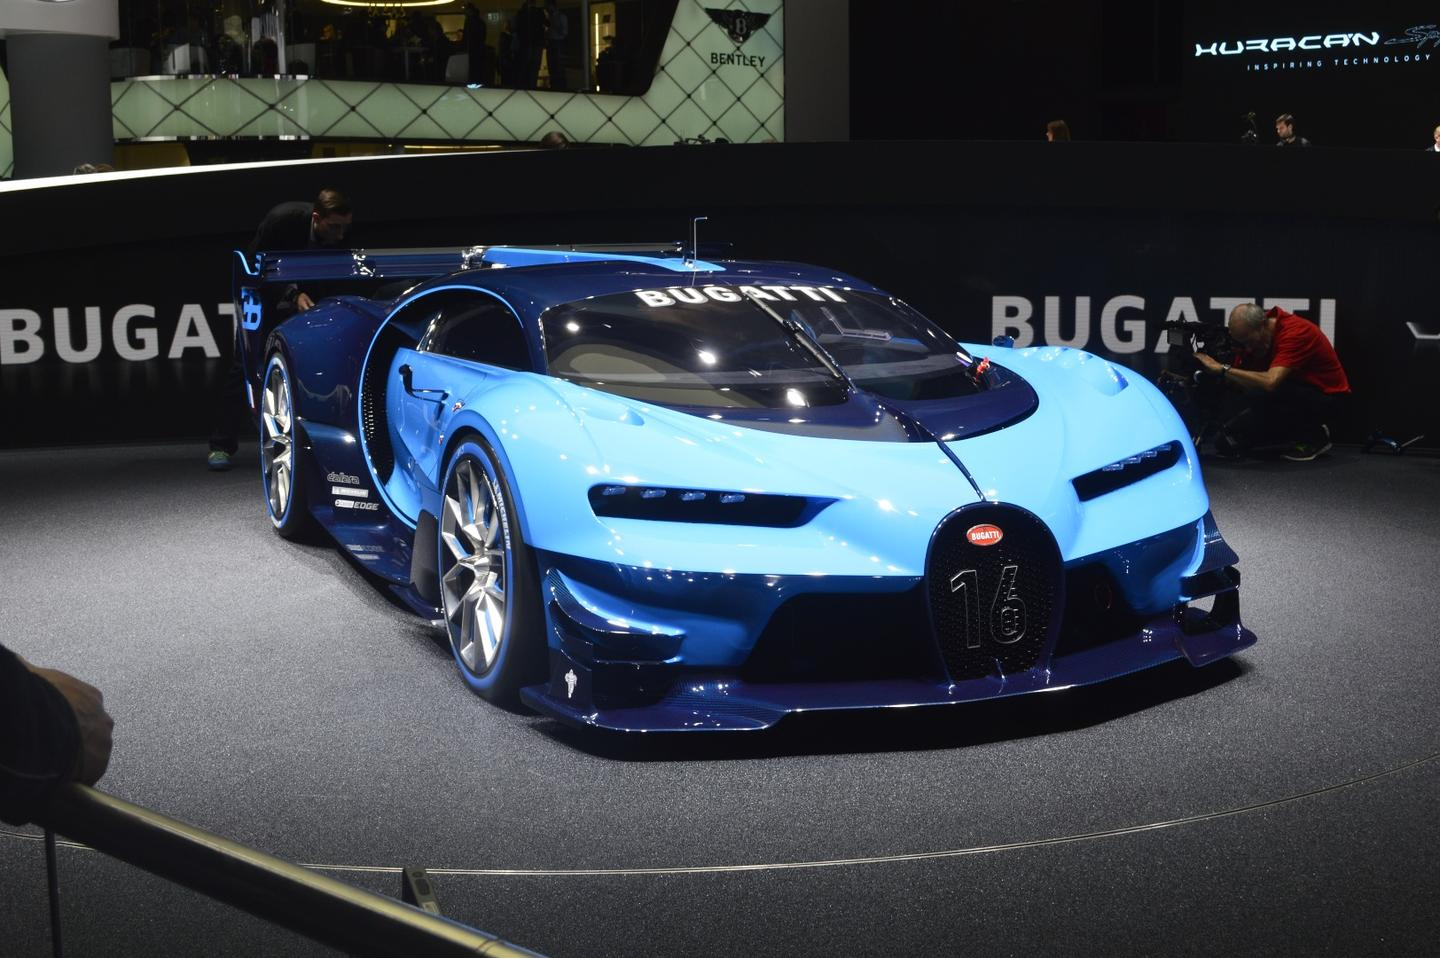 Bugatti revealed the Vision Gran Turismo at the Frankfurt Motor Show in September